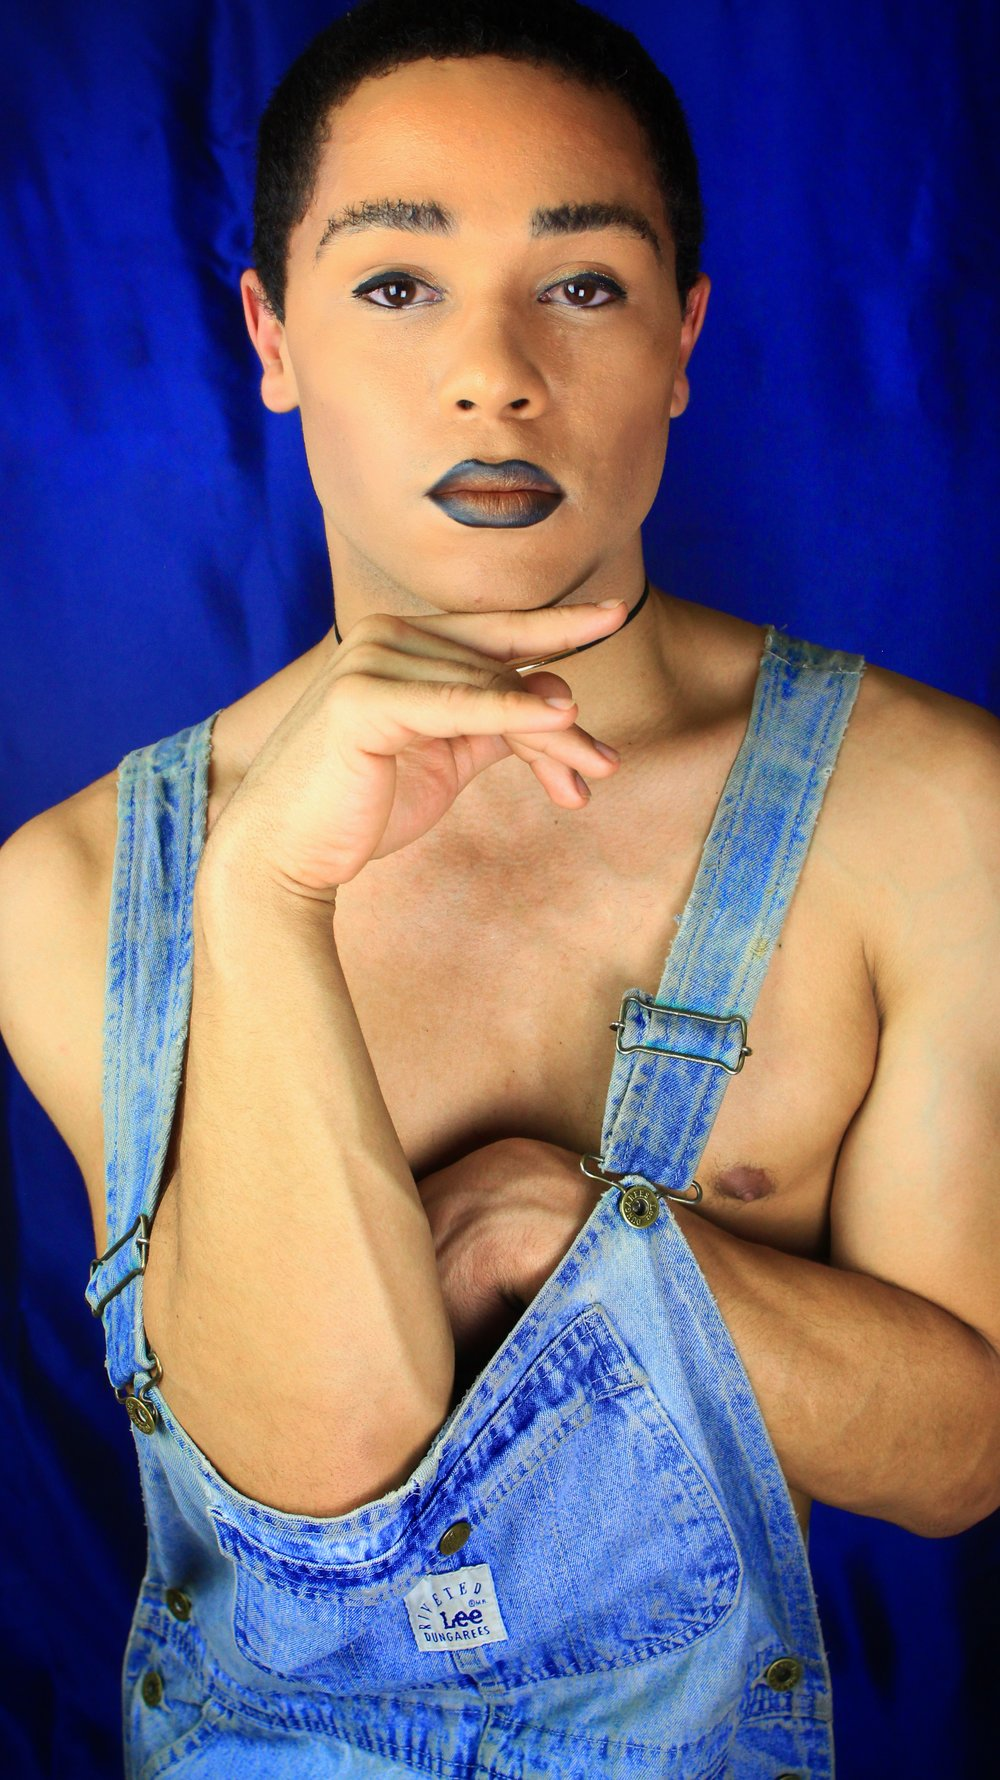 Chip Sherman Luna - (he/him)Categories: Sex Siren Male Figure, Runway, Drag Queen Realness, Fashion